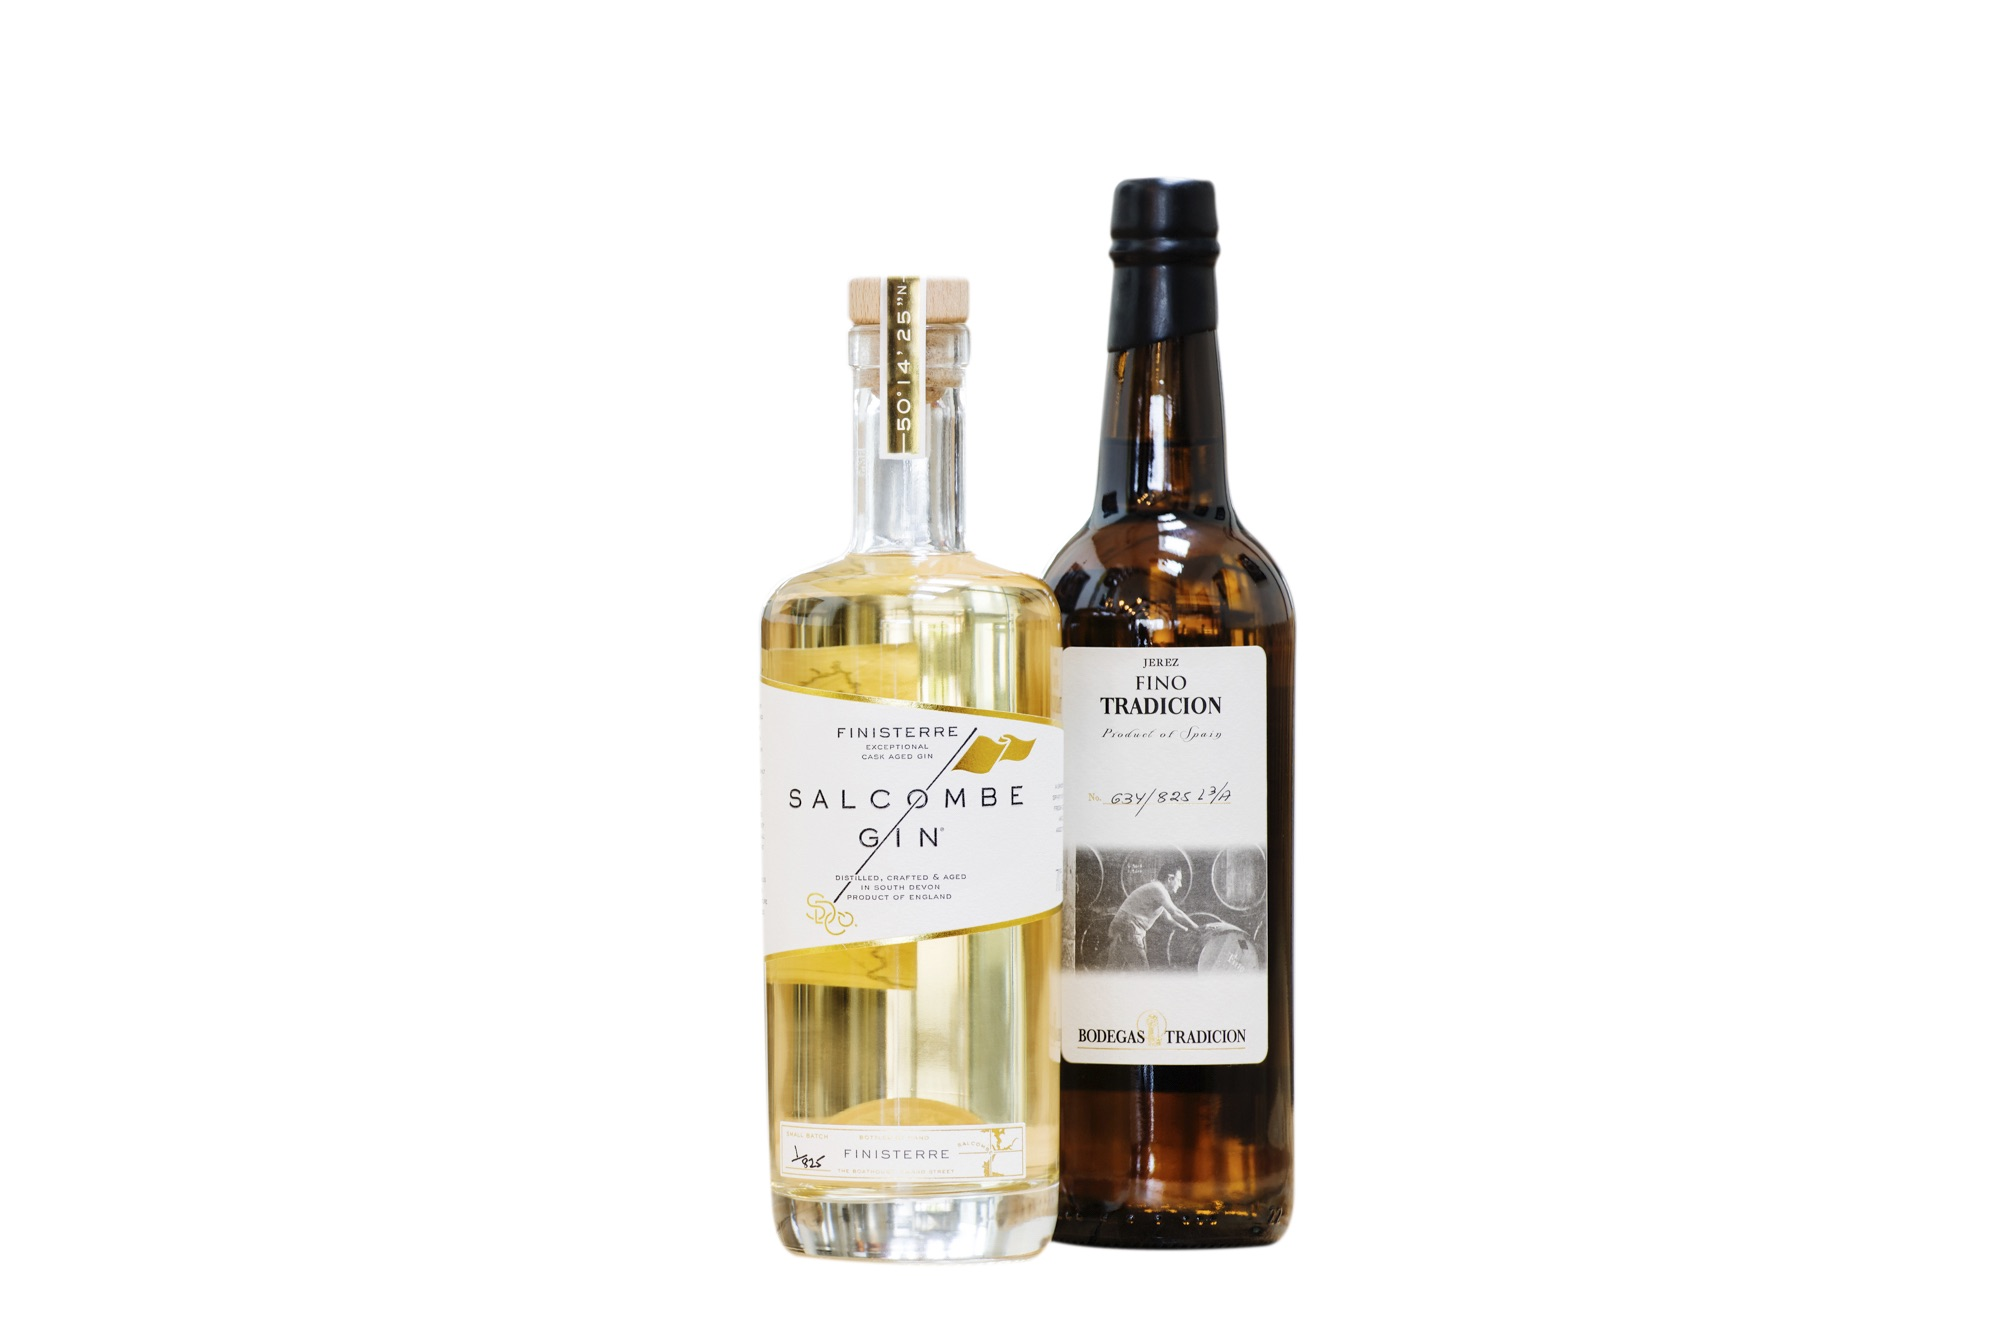 Finisterre cask-aged gin Salcombe